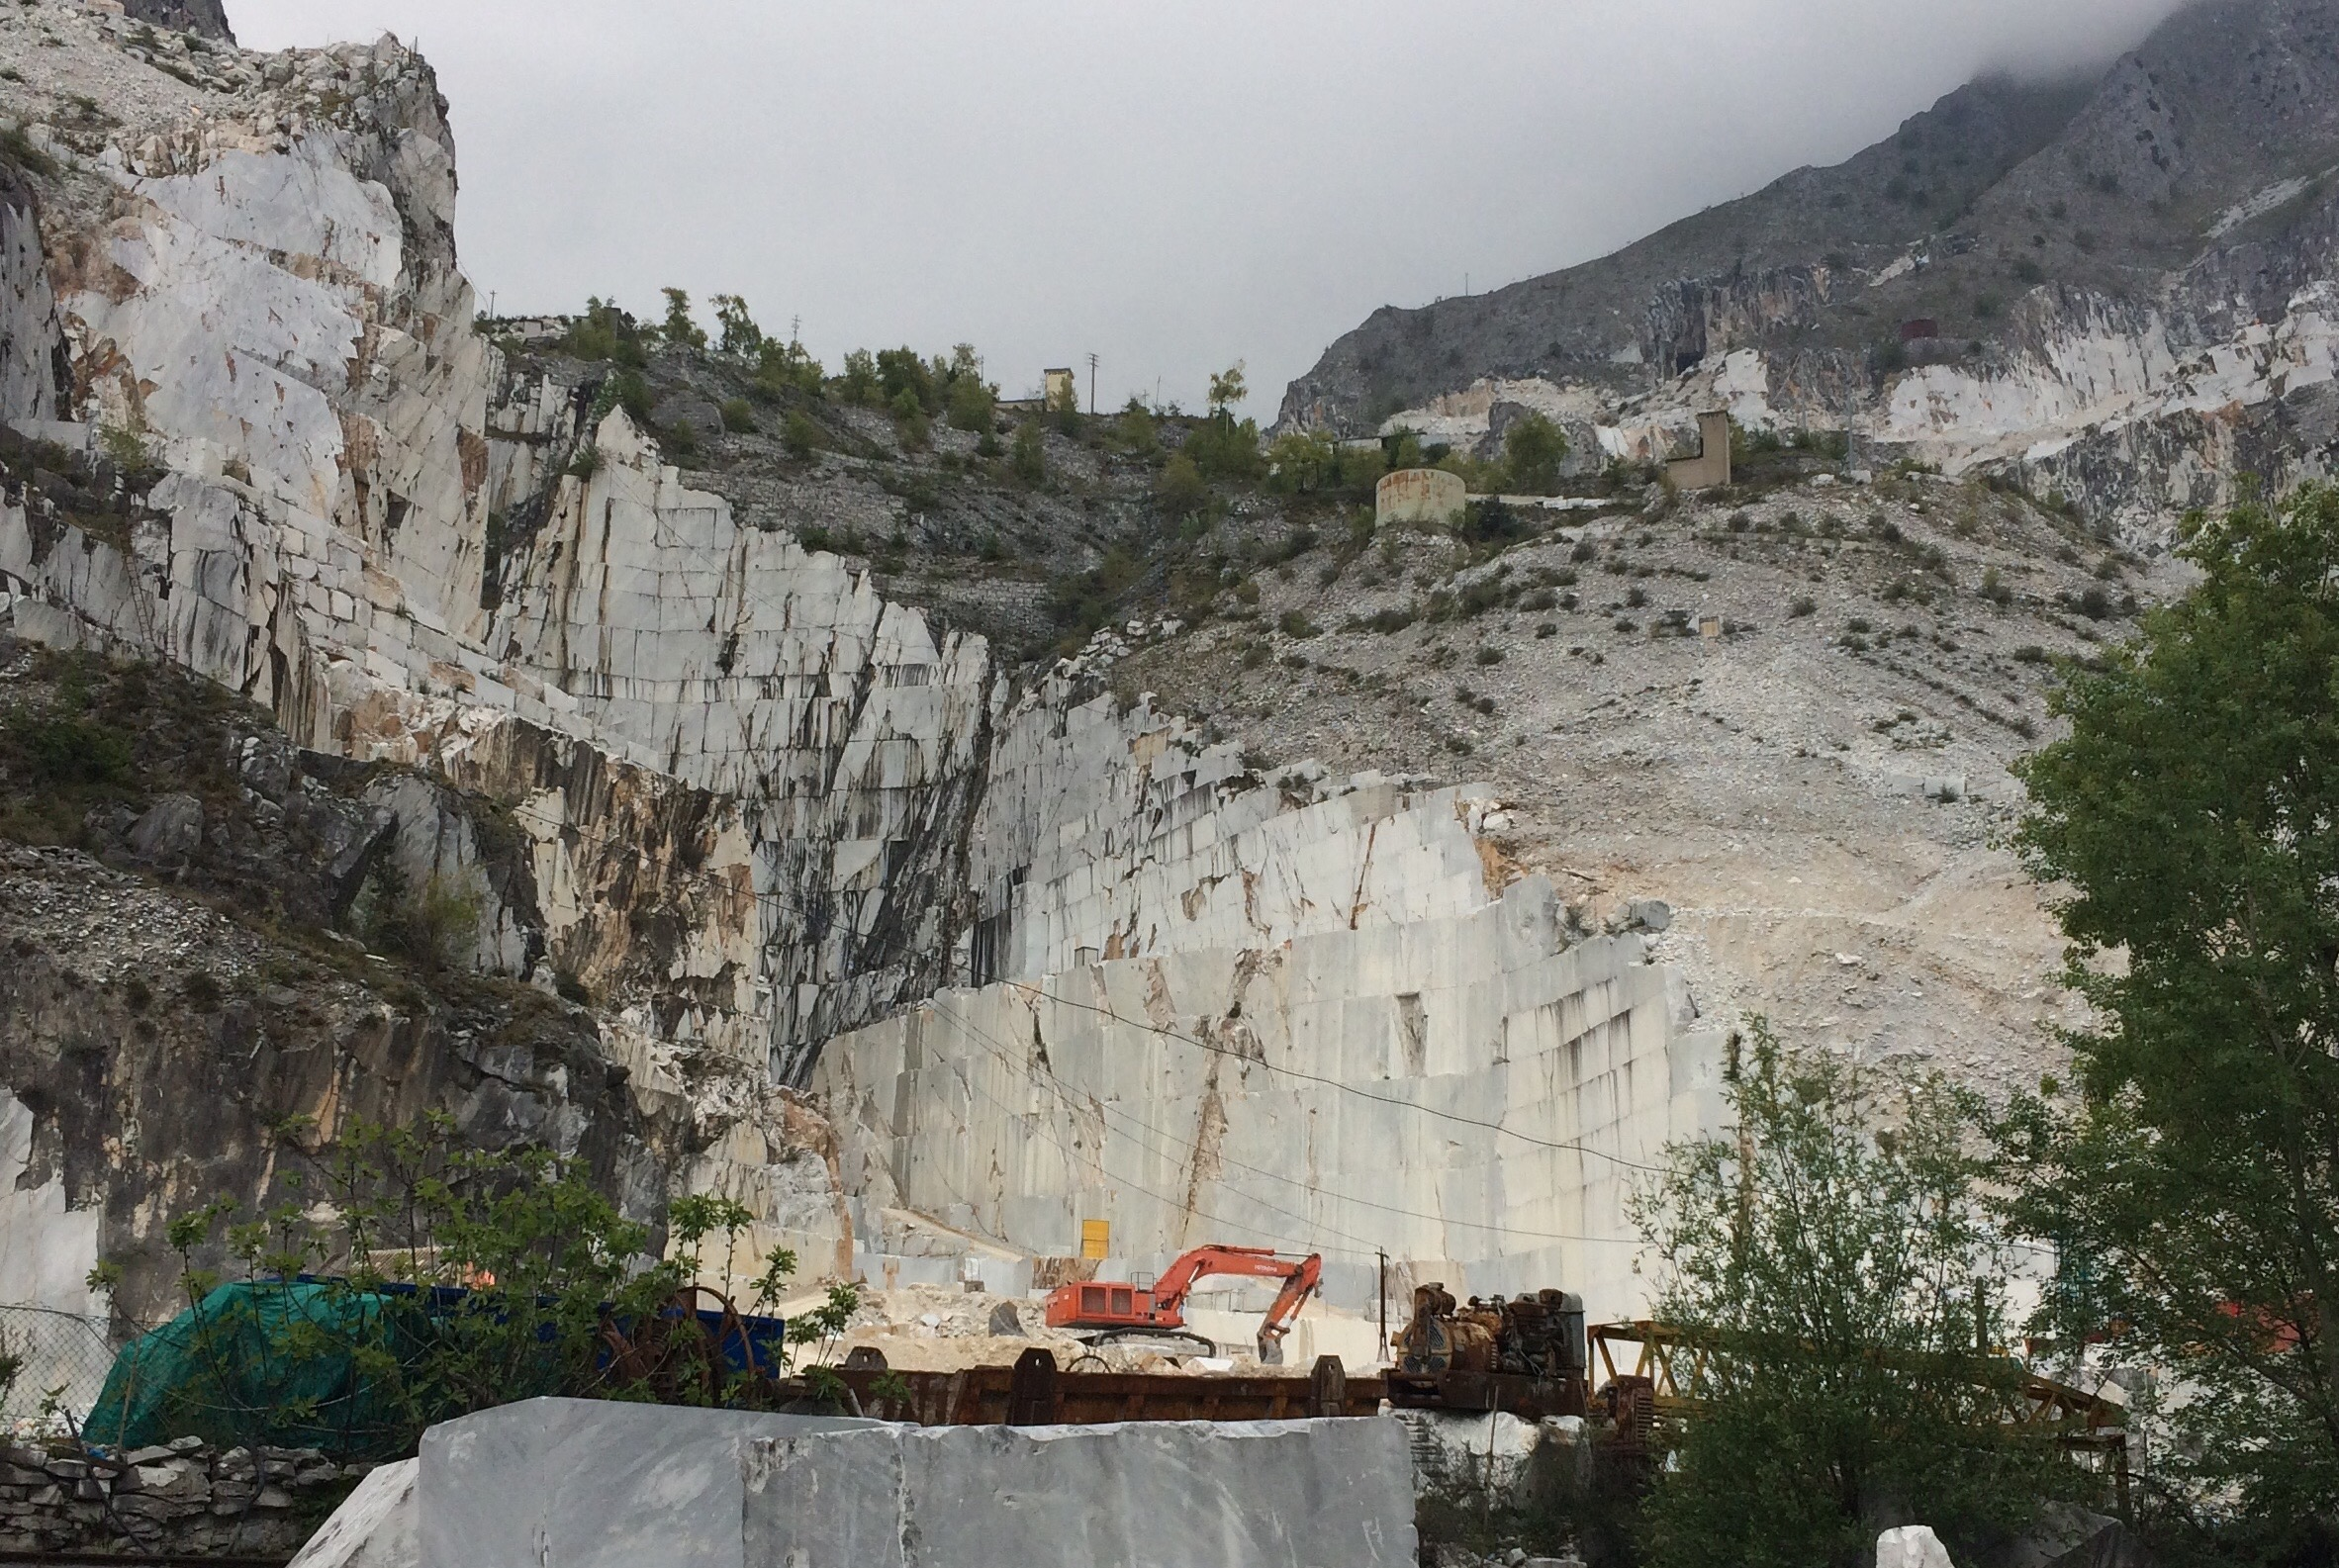 Carrara Marble Quarries Fantiscritti open cast mines